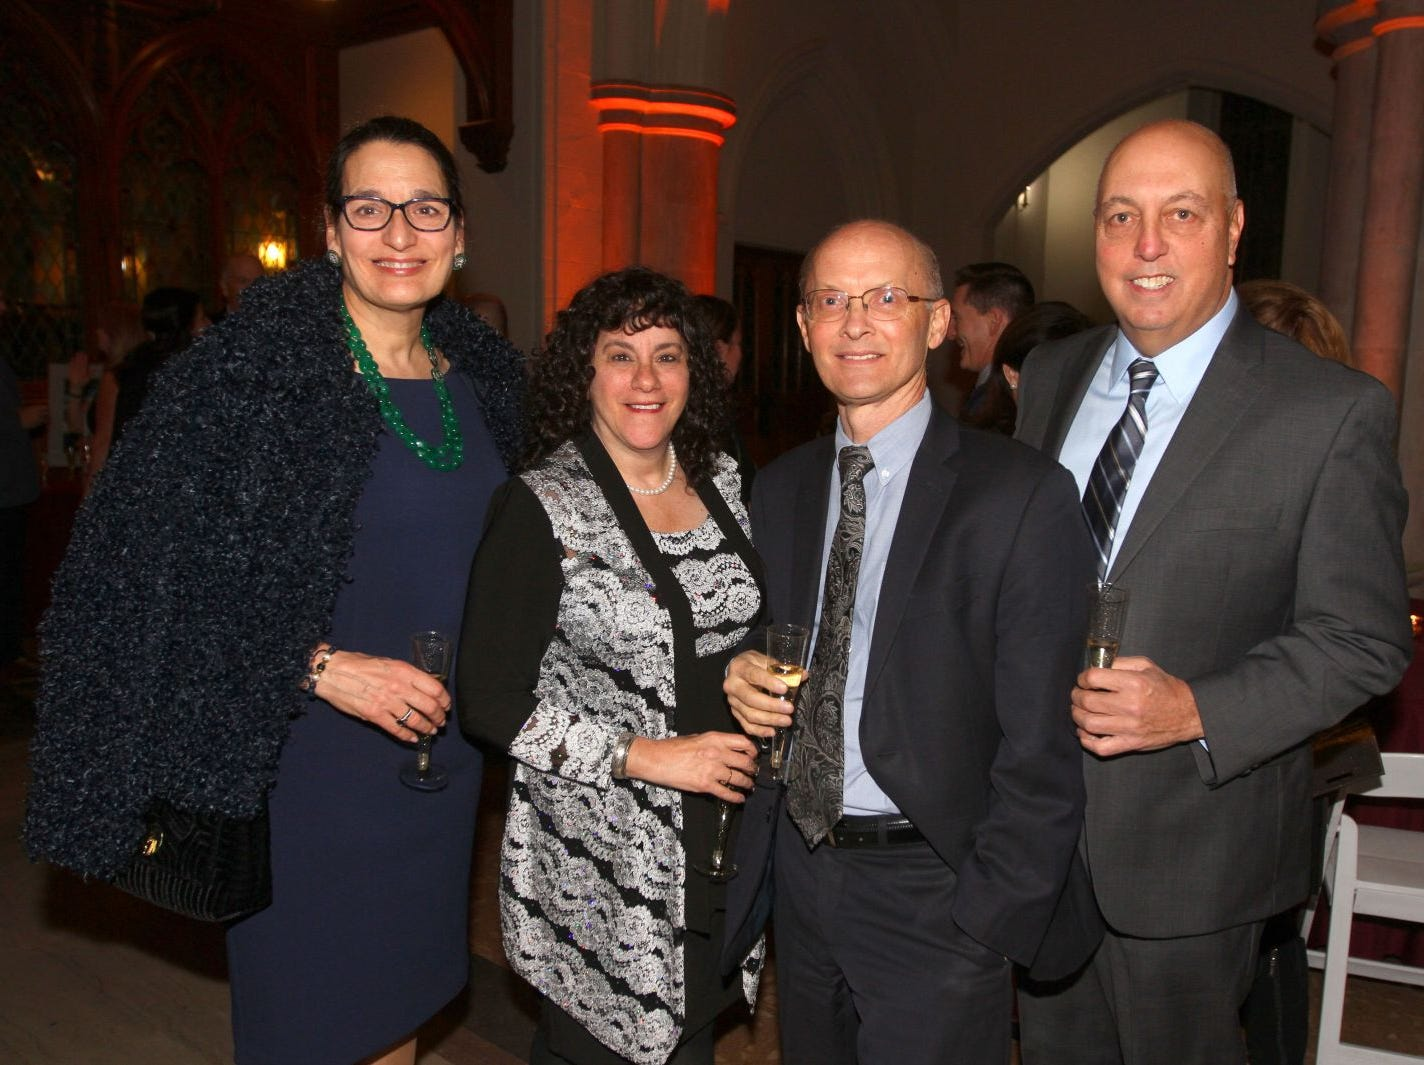 Maureen Bivona; Pearl Hart; Greg Hart; Frank Bivona. Wyckoff Family YMCA hosted its 75th anniversary gala to celebrate its benefactors, held at the Rio Vista seminary in Mahwah. 11/16/2018